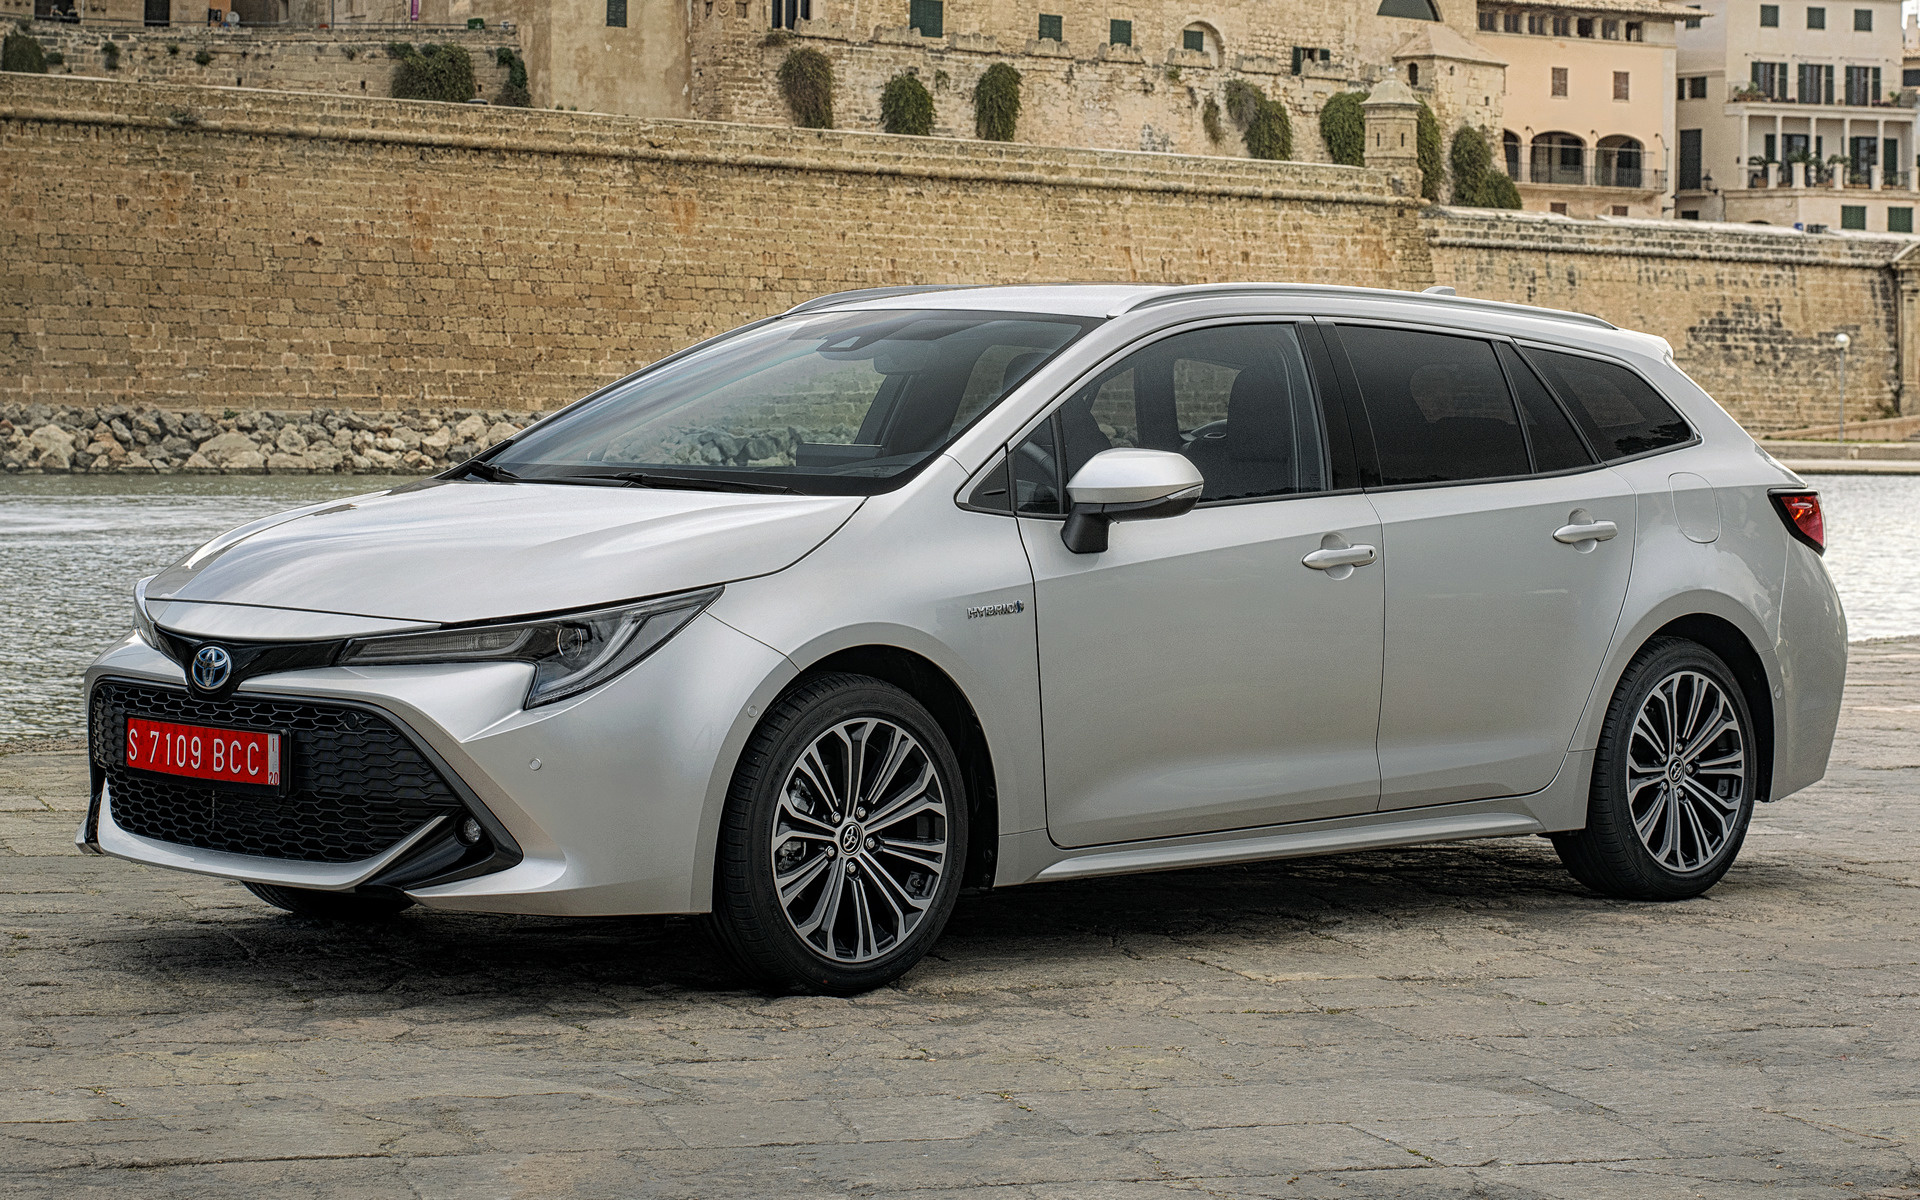 2019 Toyota Corolla Touring Sports Hybrid Wallpapers And